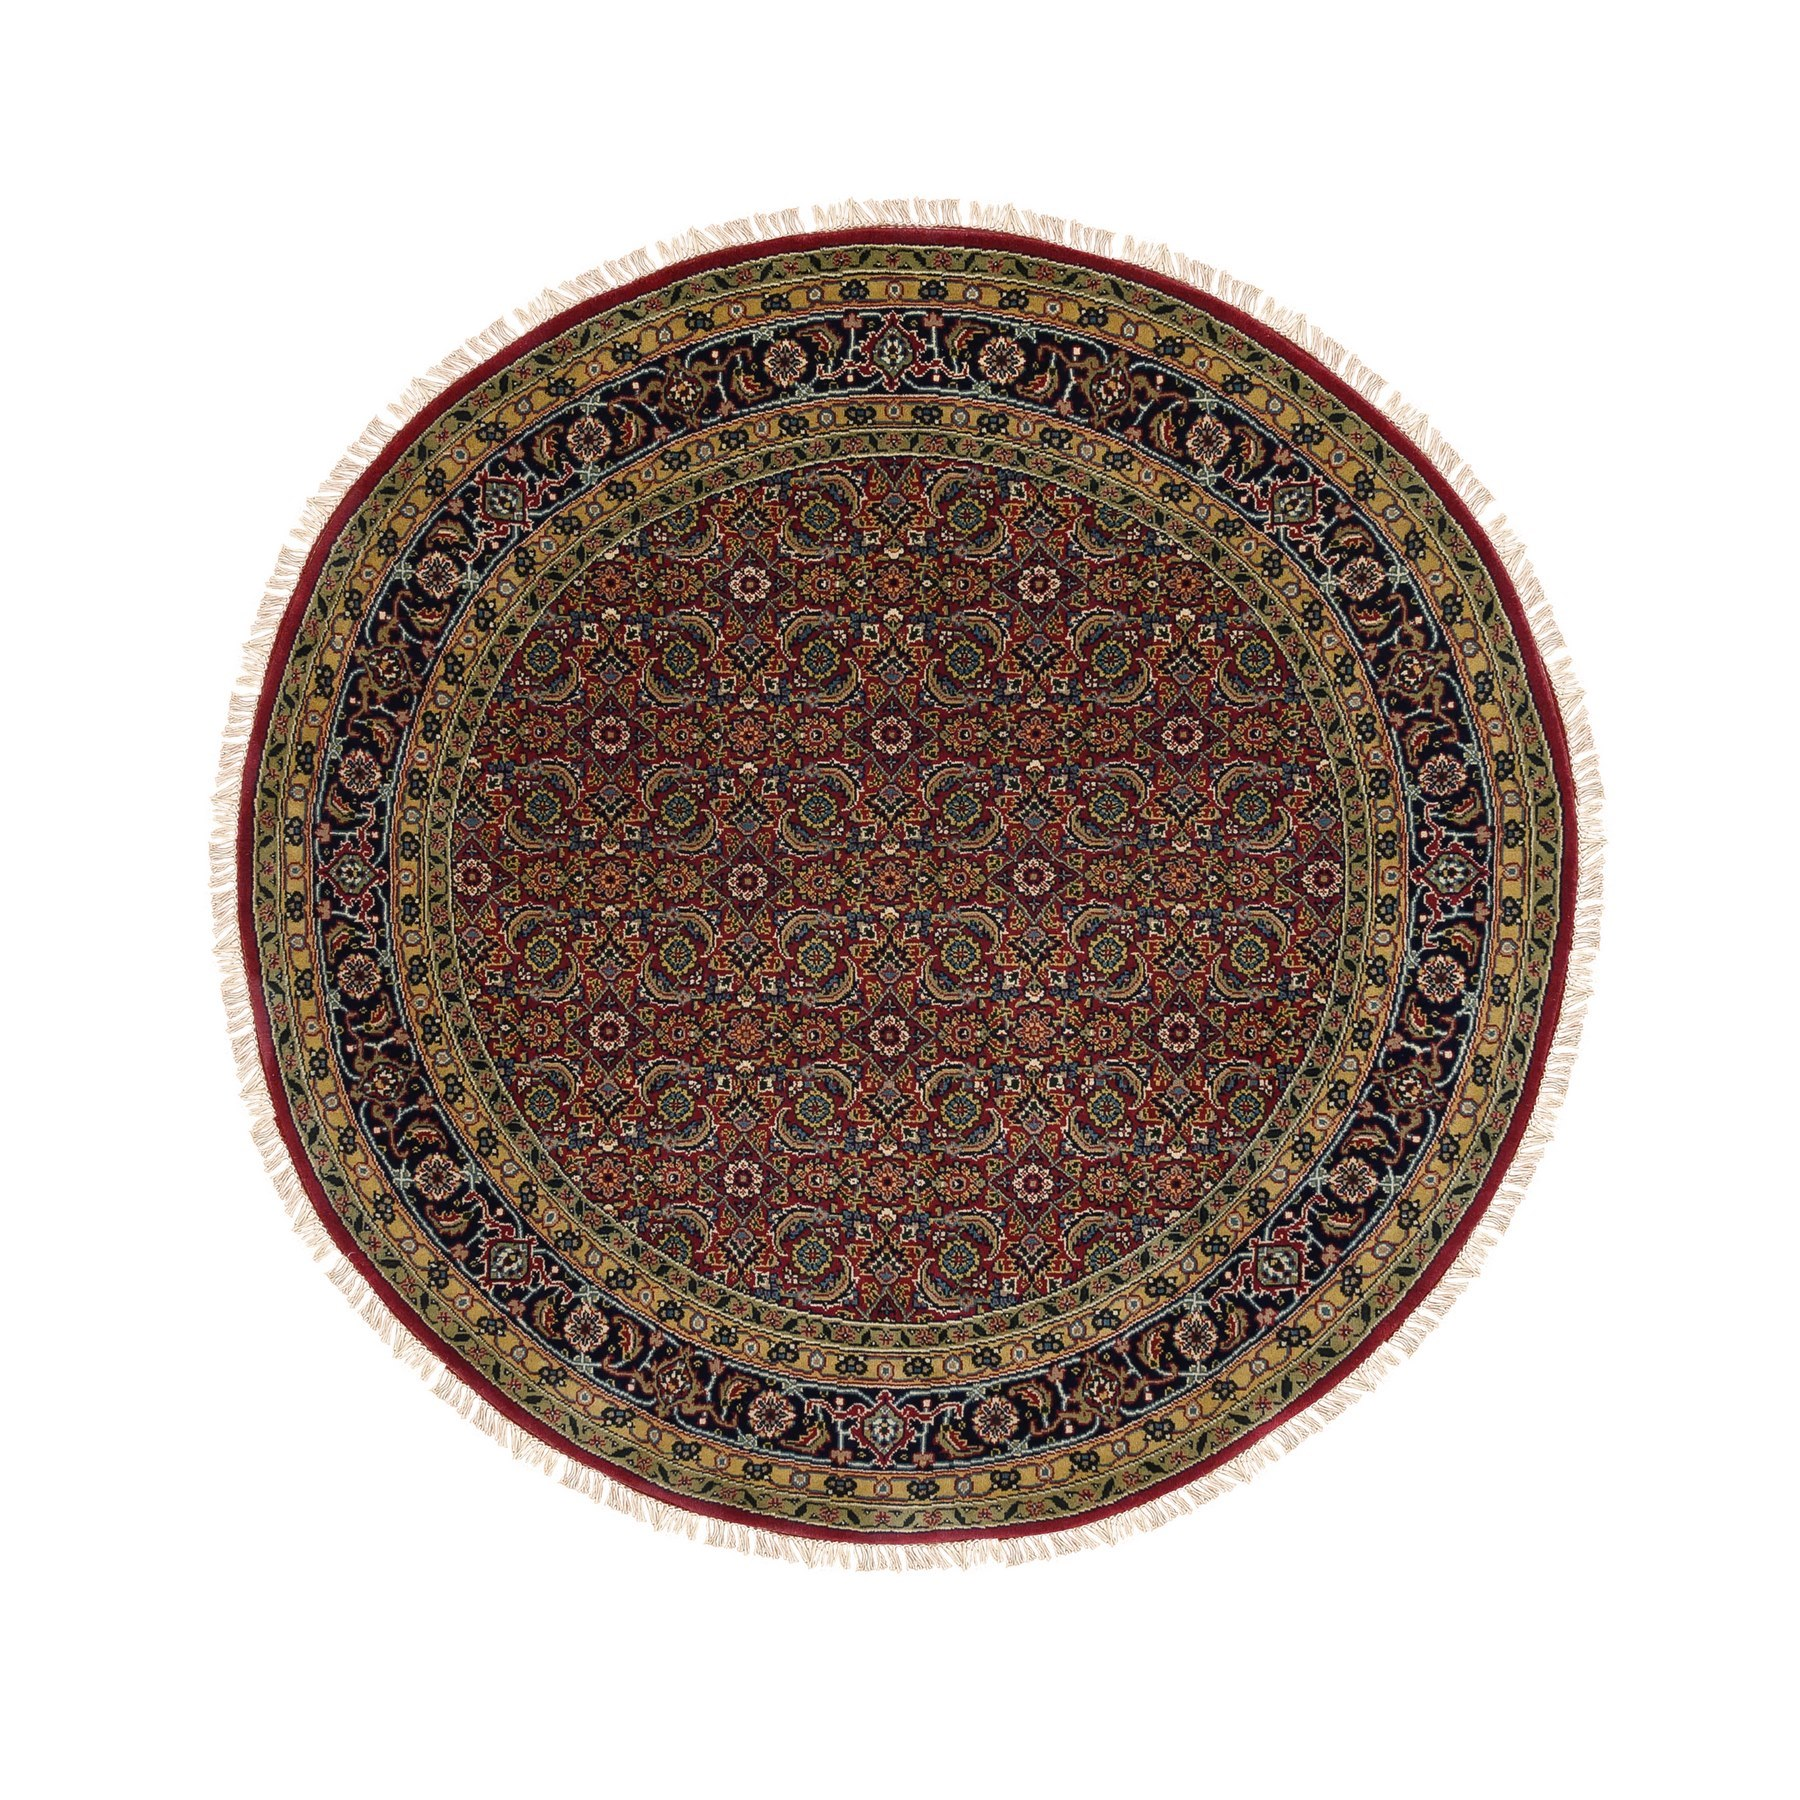 Pirniakan Collection Hand Knotted Red Rug No: 1124700